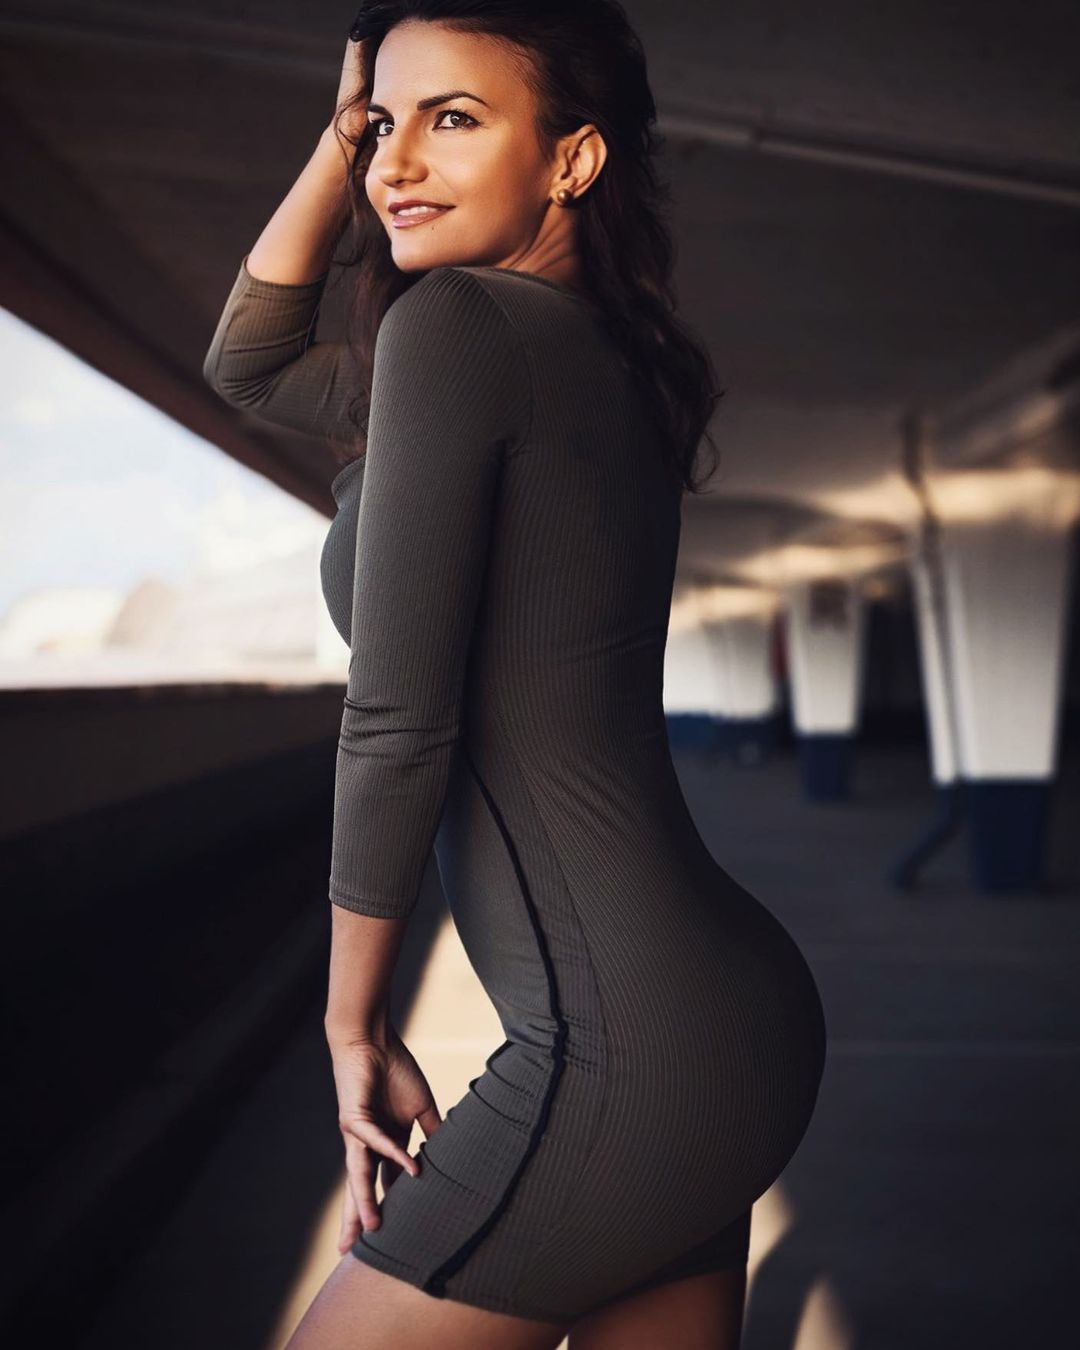 Catwoman385-Wallpapers-Insta-Fit-Bio-5